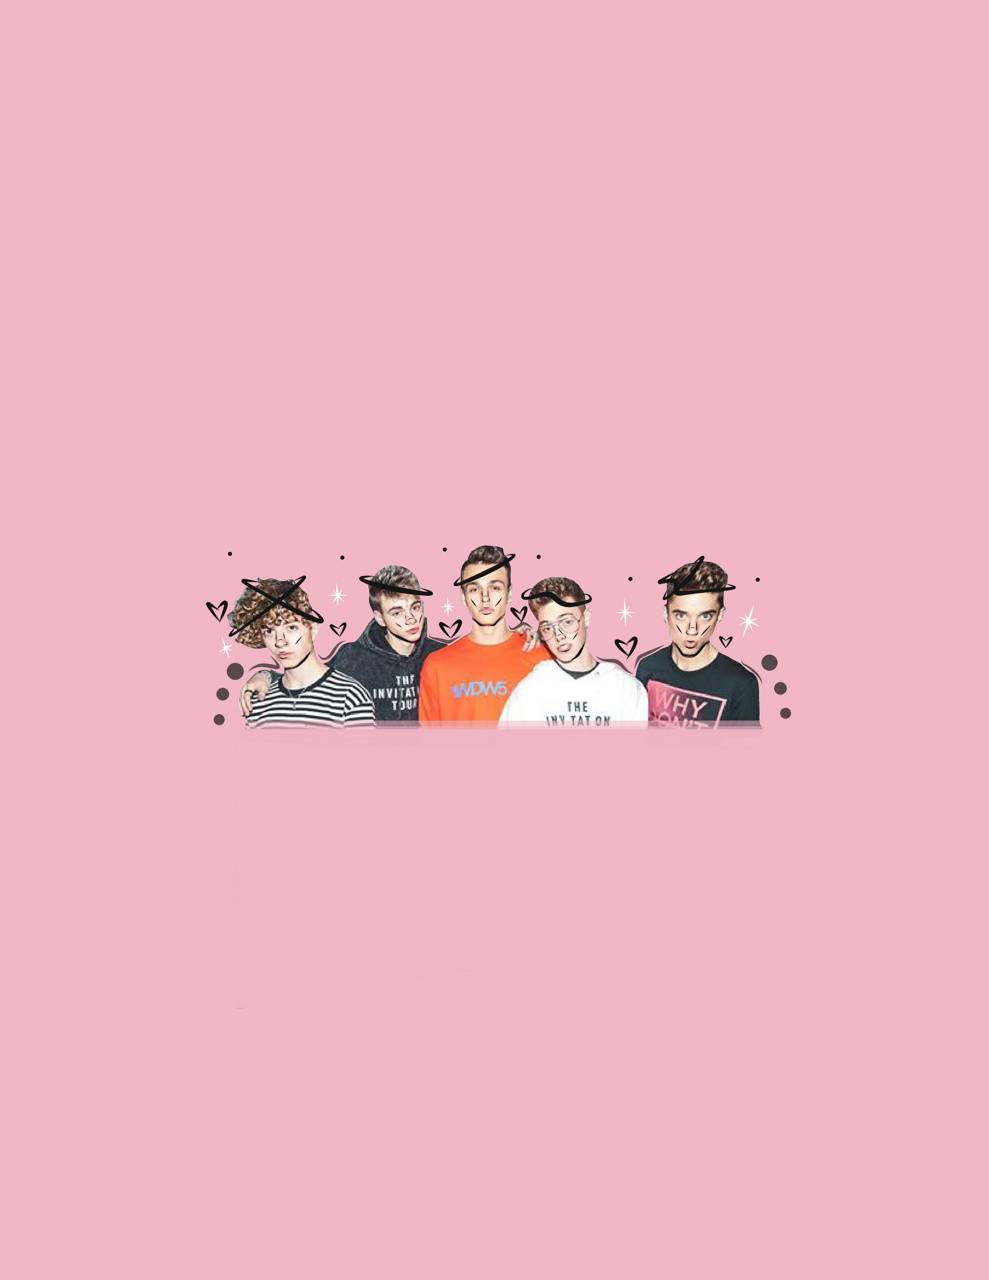 Why Dont We wallpaper by seaveyposts